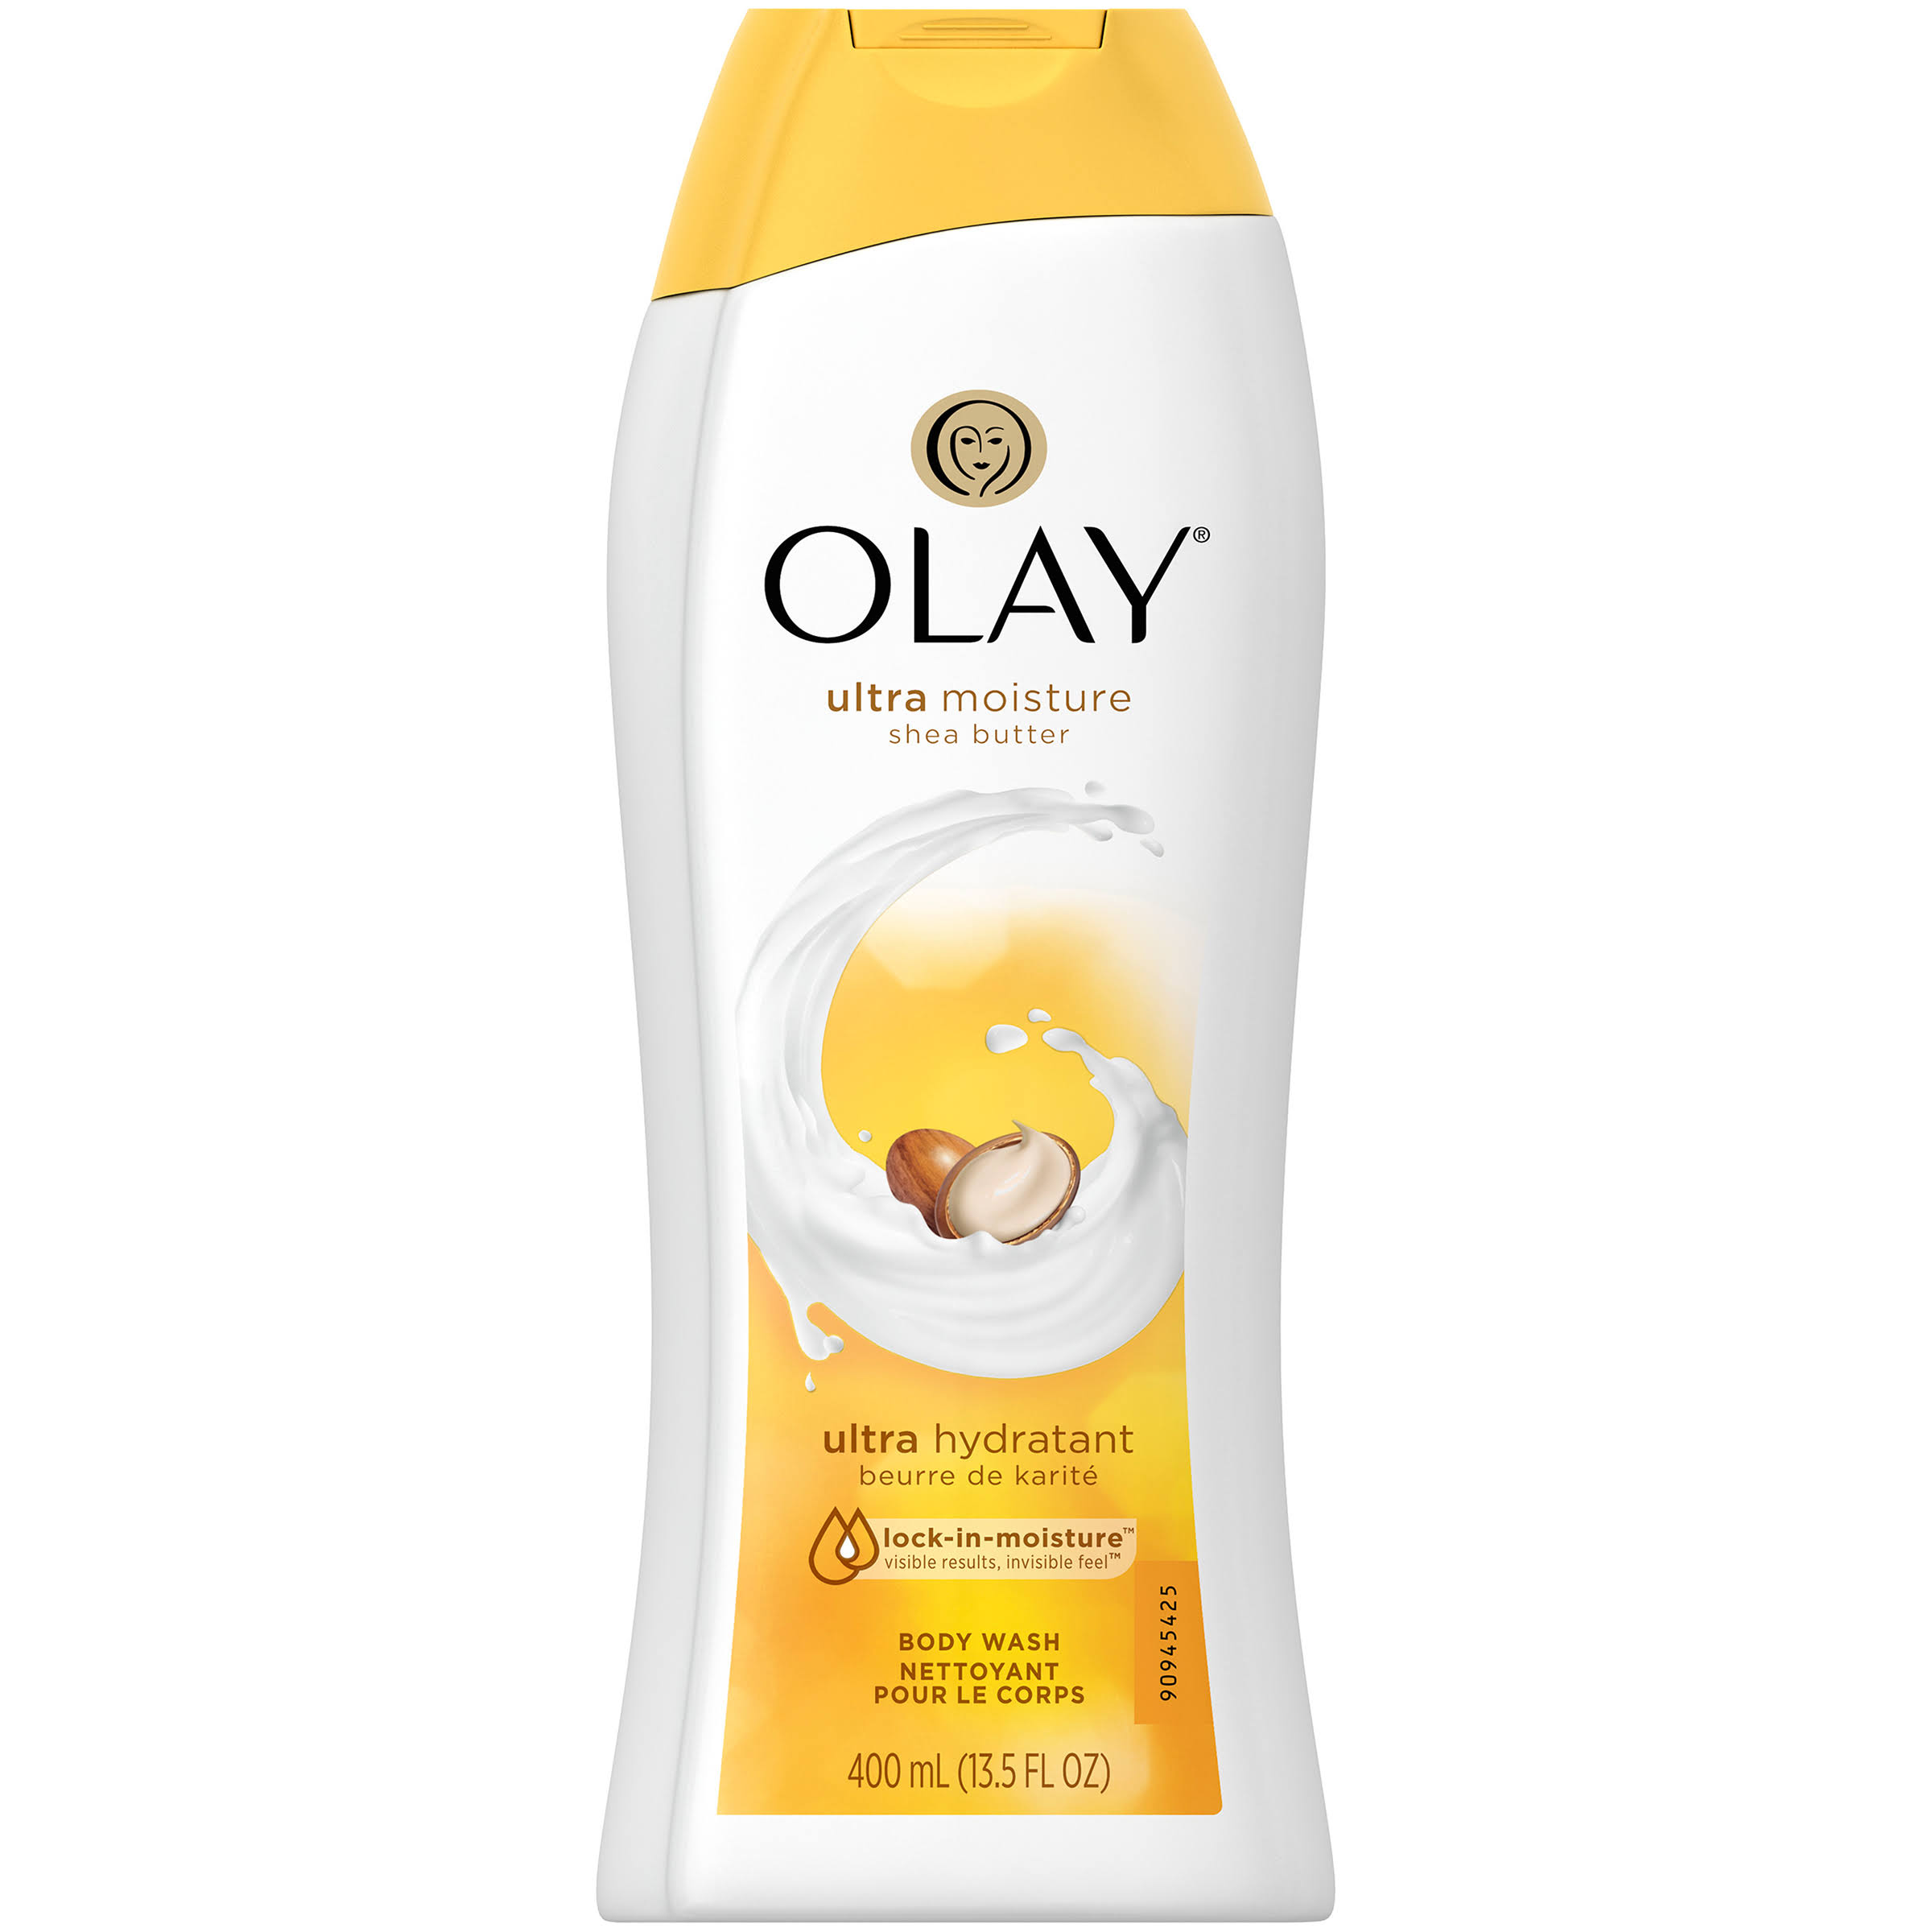 Olay Ultra Moisture Moisturizing Body Wash - with Shea Butter, 13.5oz